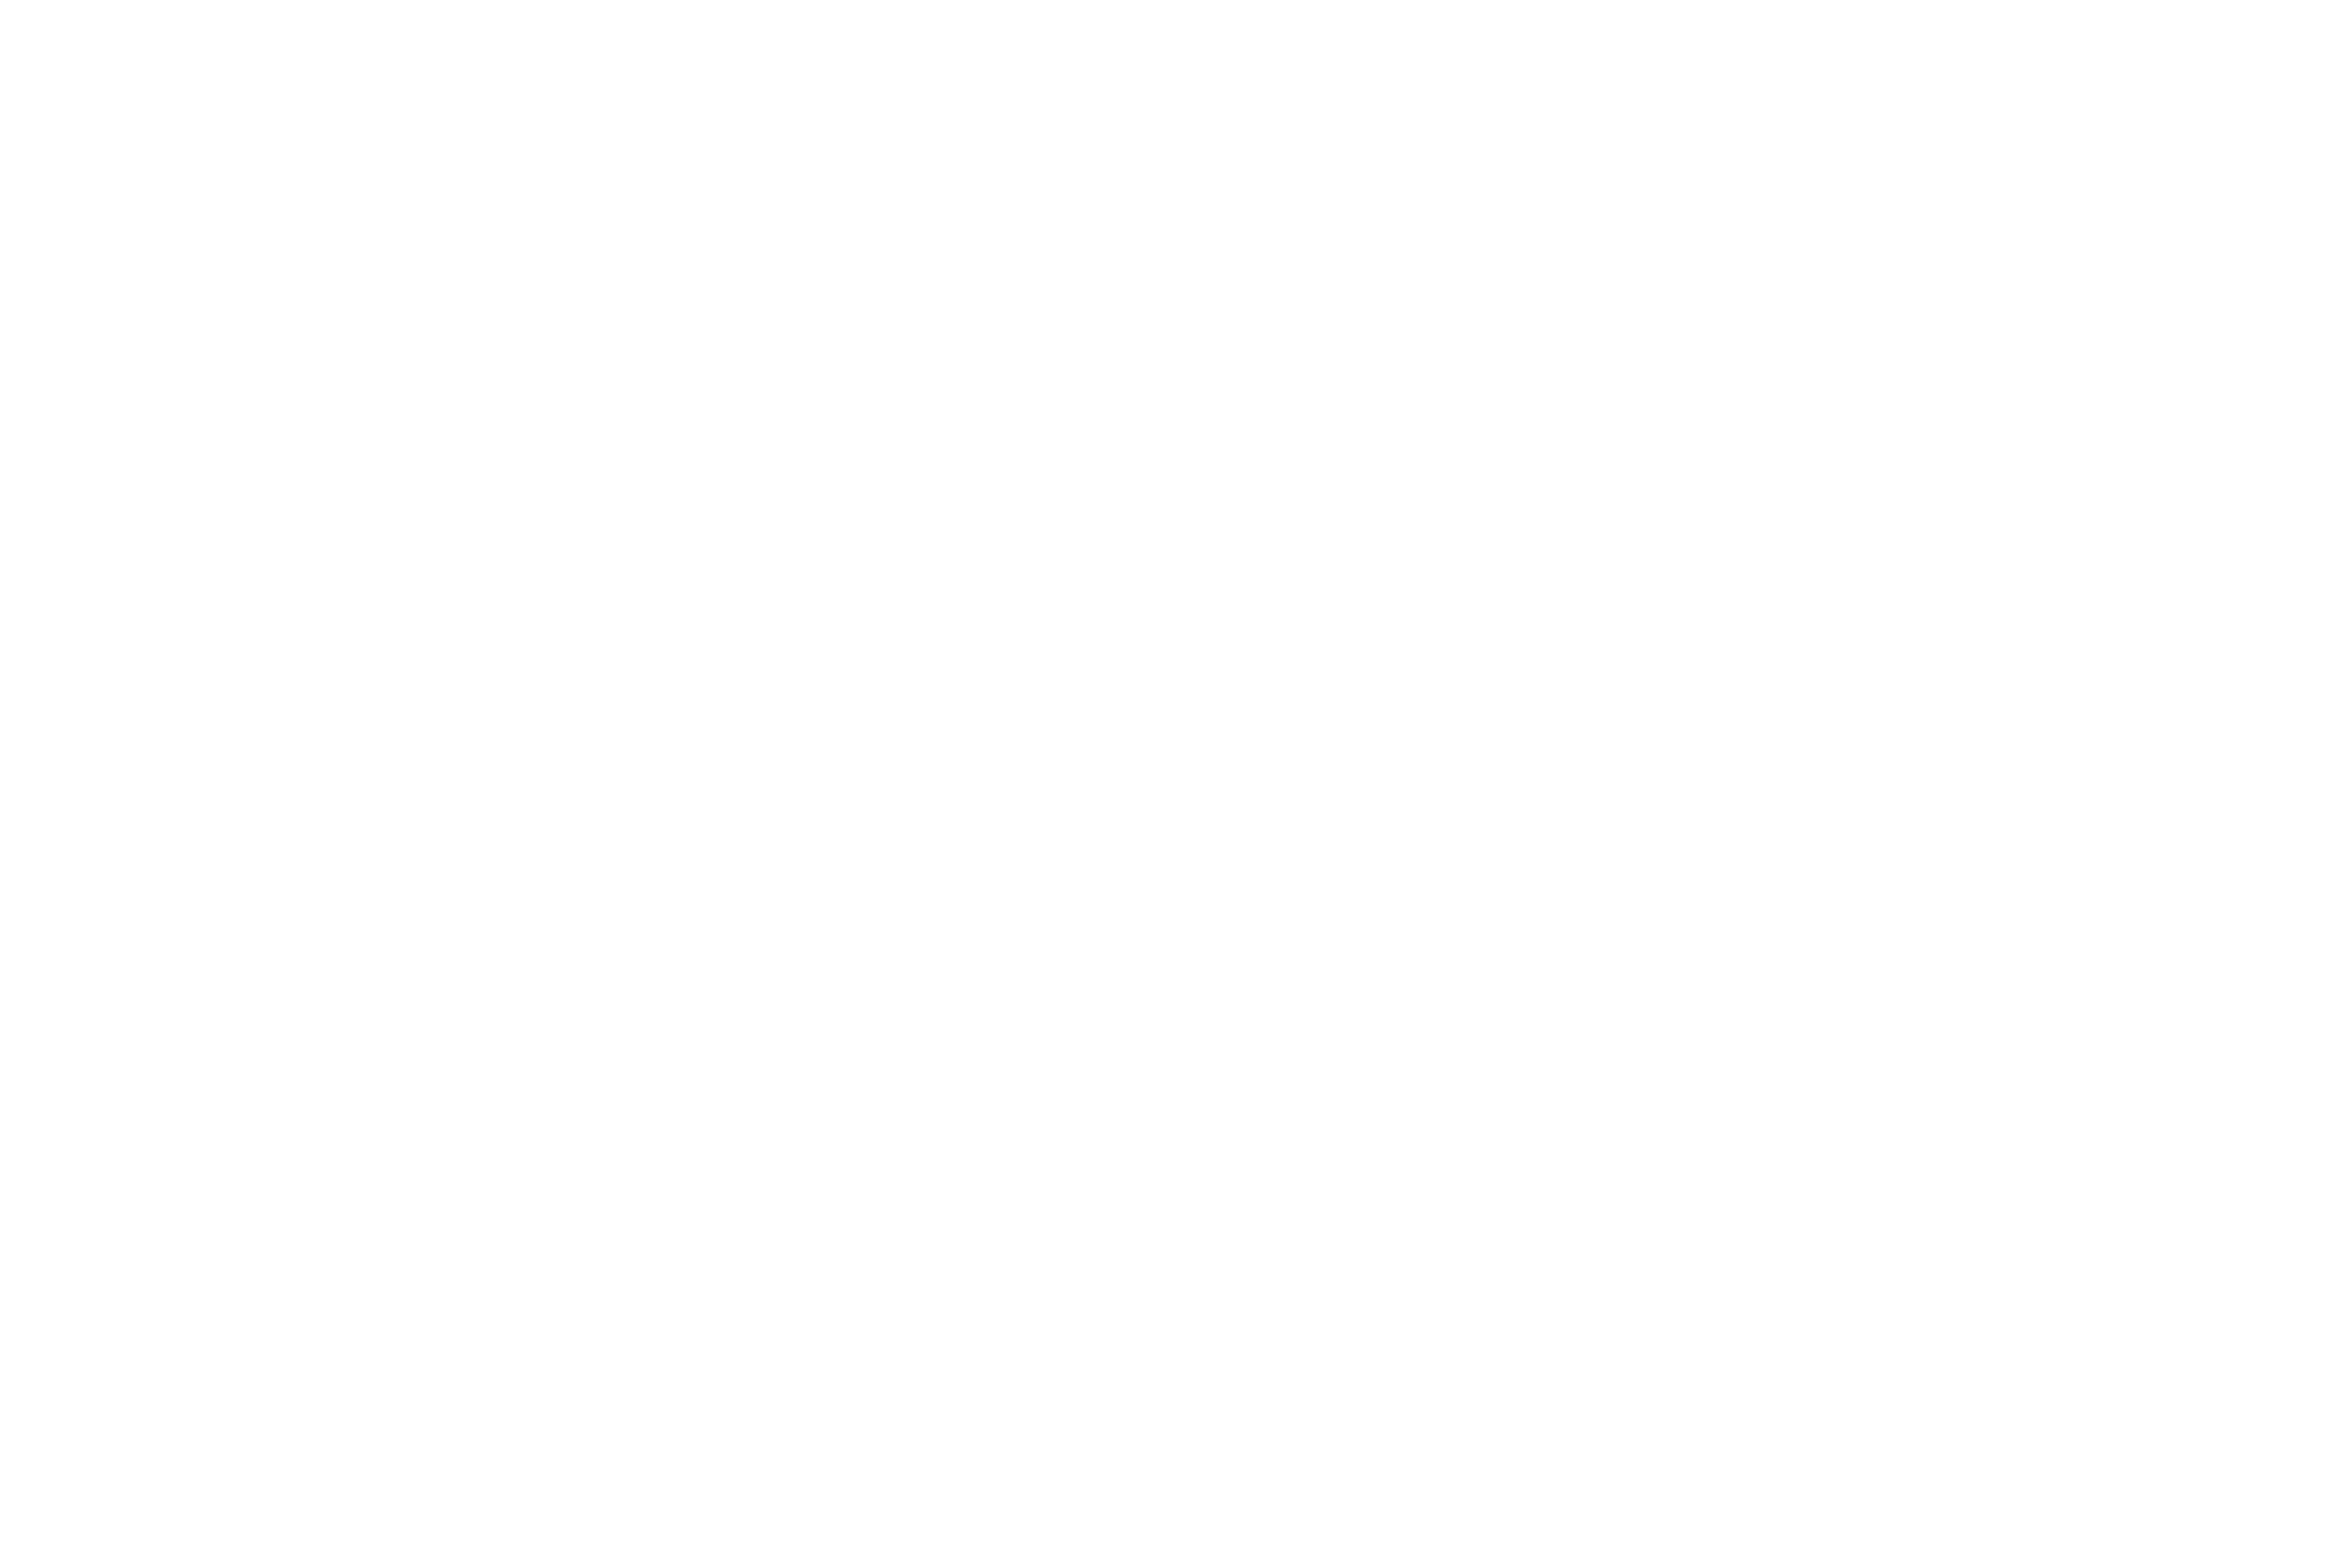 why_join_BR_nation.png